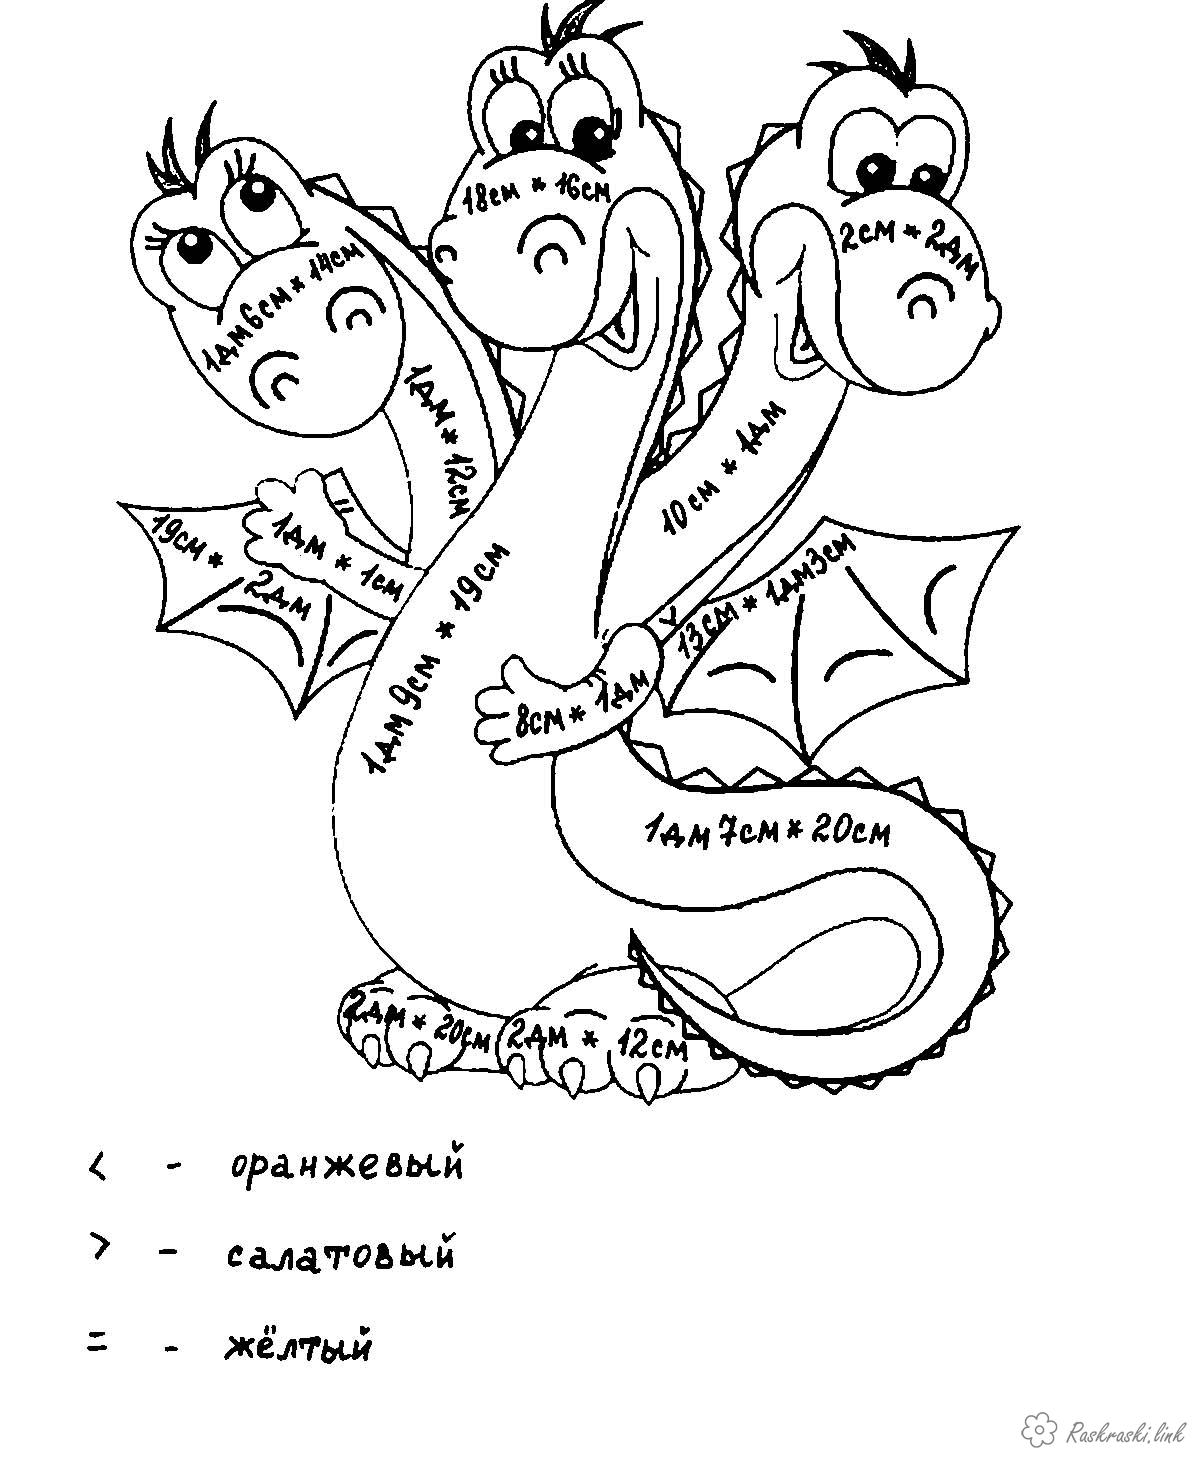 Coloring coloring pages Math Grade 3 Mathematical coloring pages, a three-headed dragon, Dragon